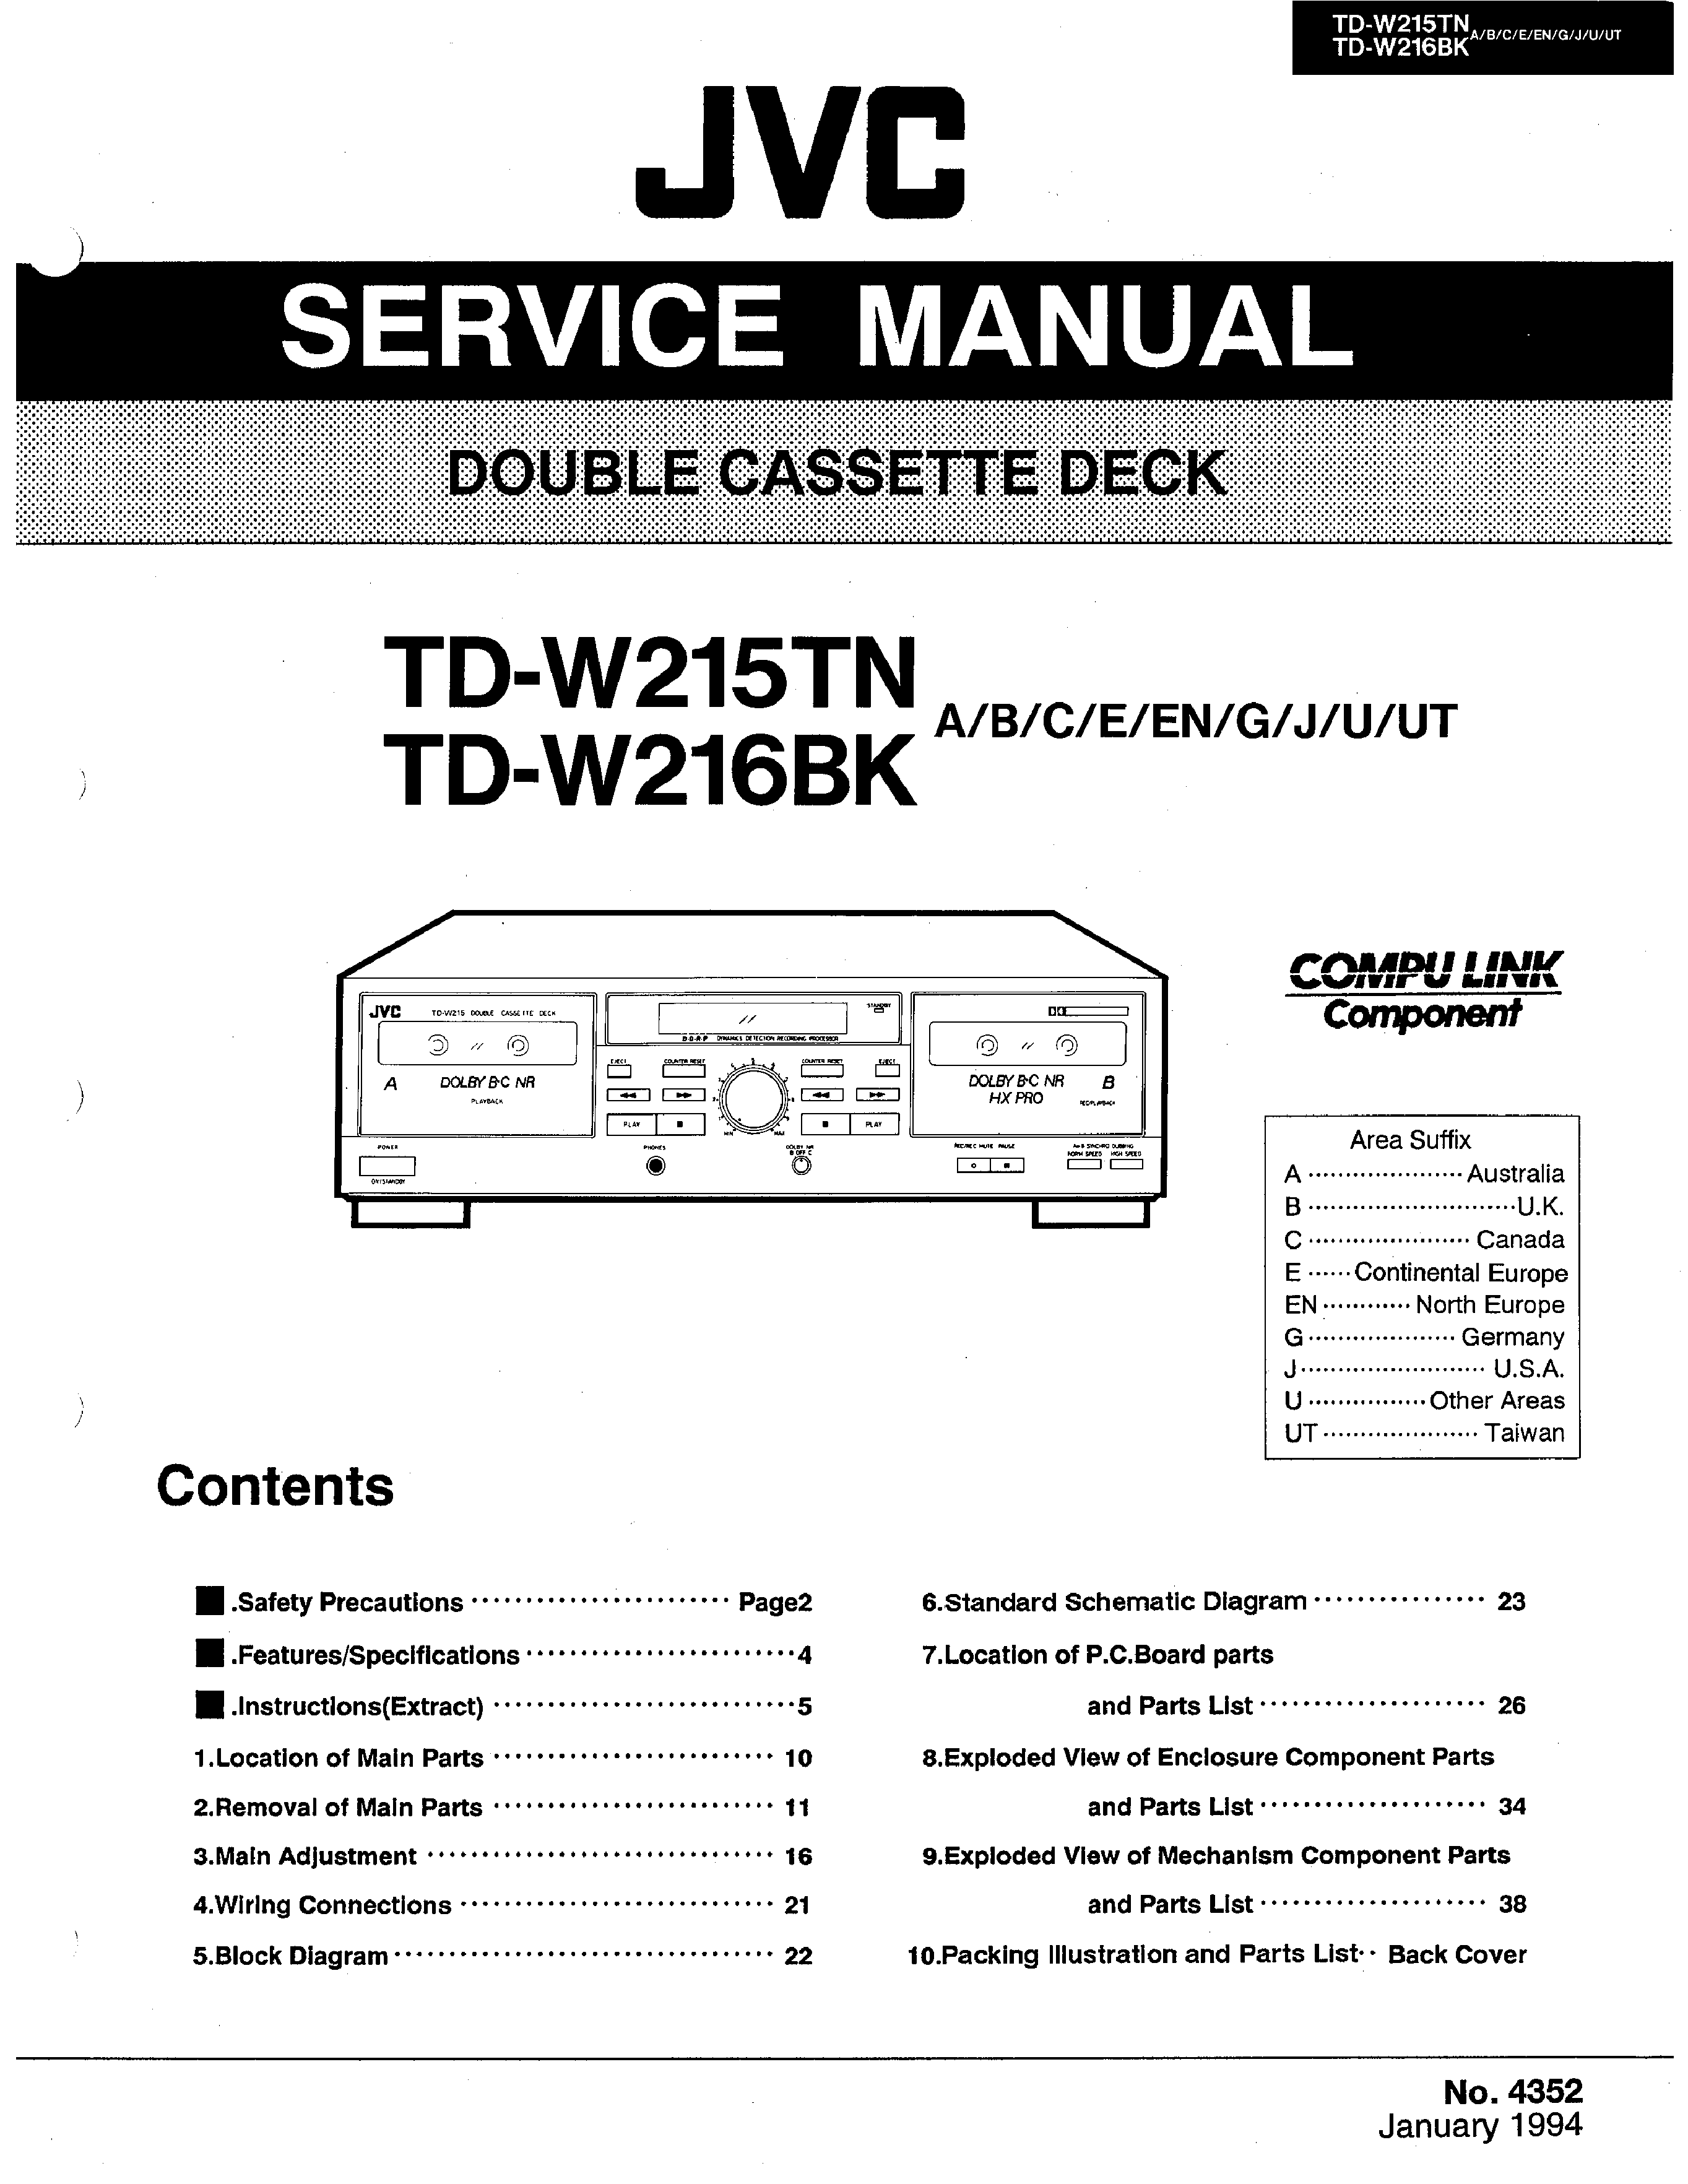 Jvc Tdw216 Service Manual Immediate Download Schematic Diagram Background Image